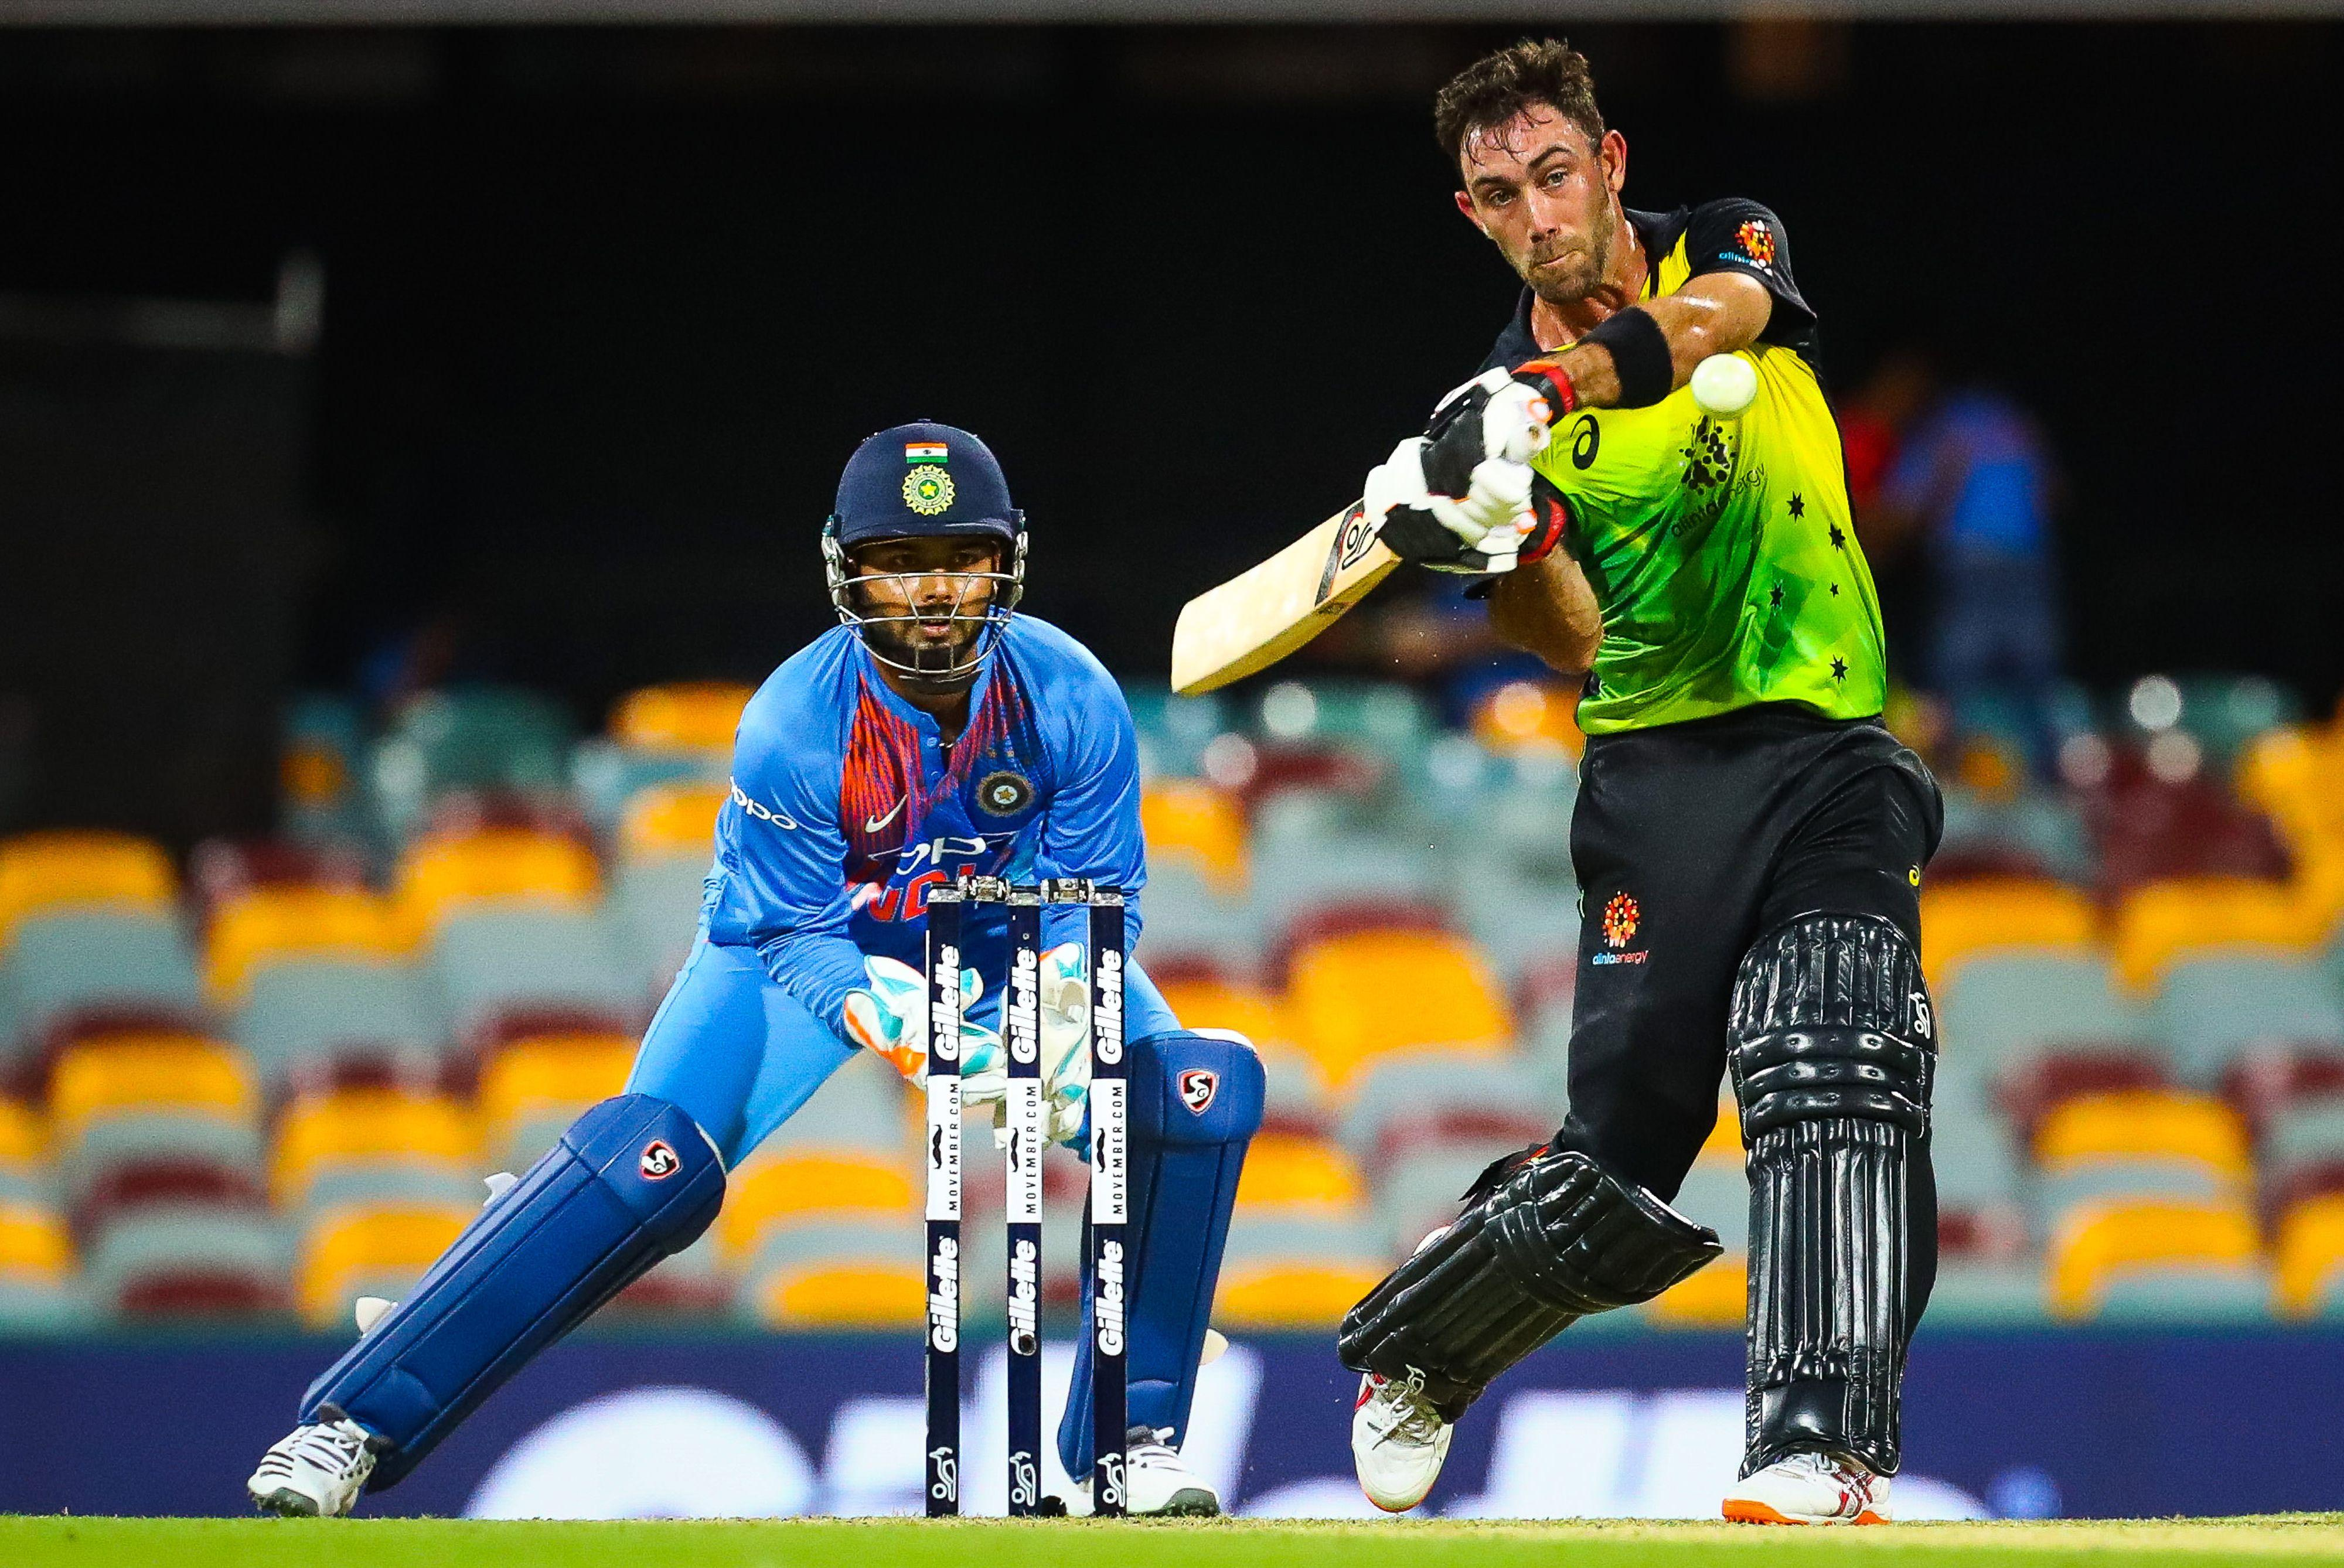 Maxwell decided to ditch his helmet for the innings as Australia were first in to bat against India